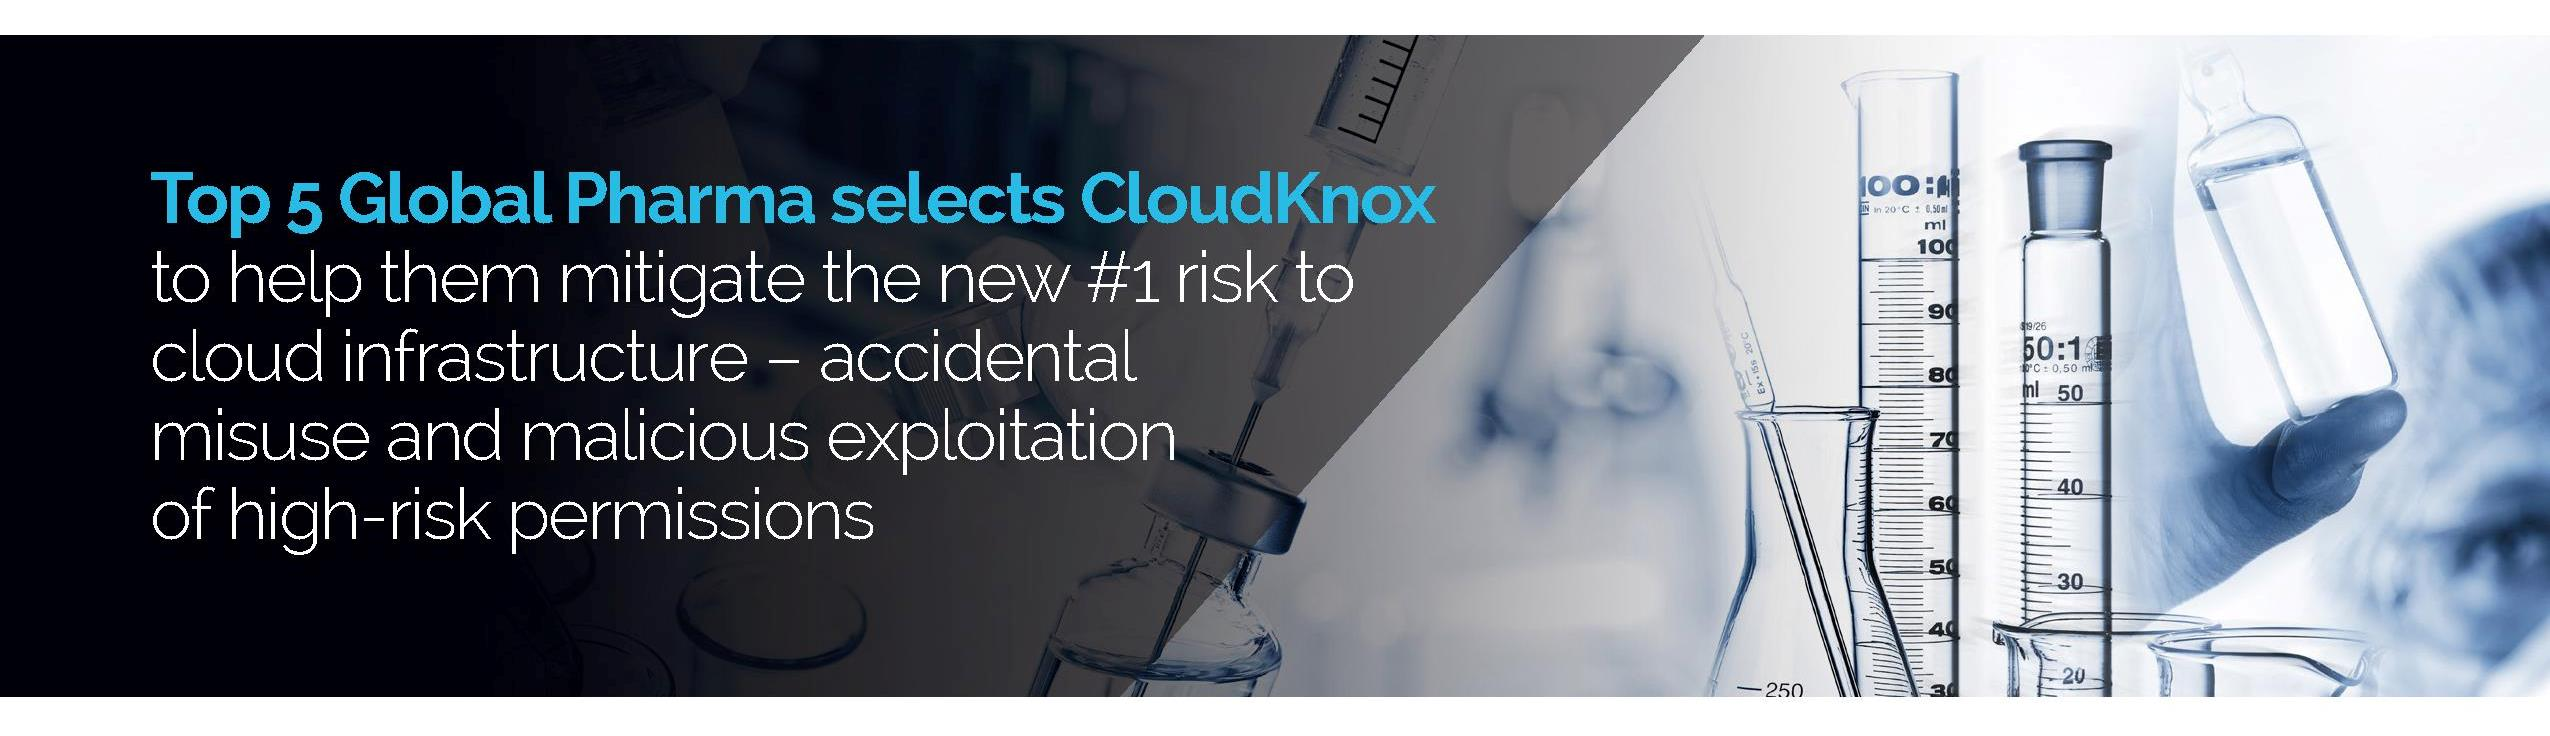 Top 5 Global Pharma selects CloudKnox